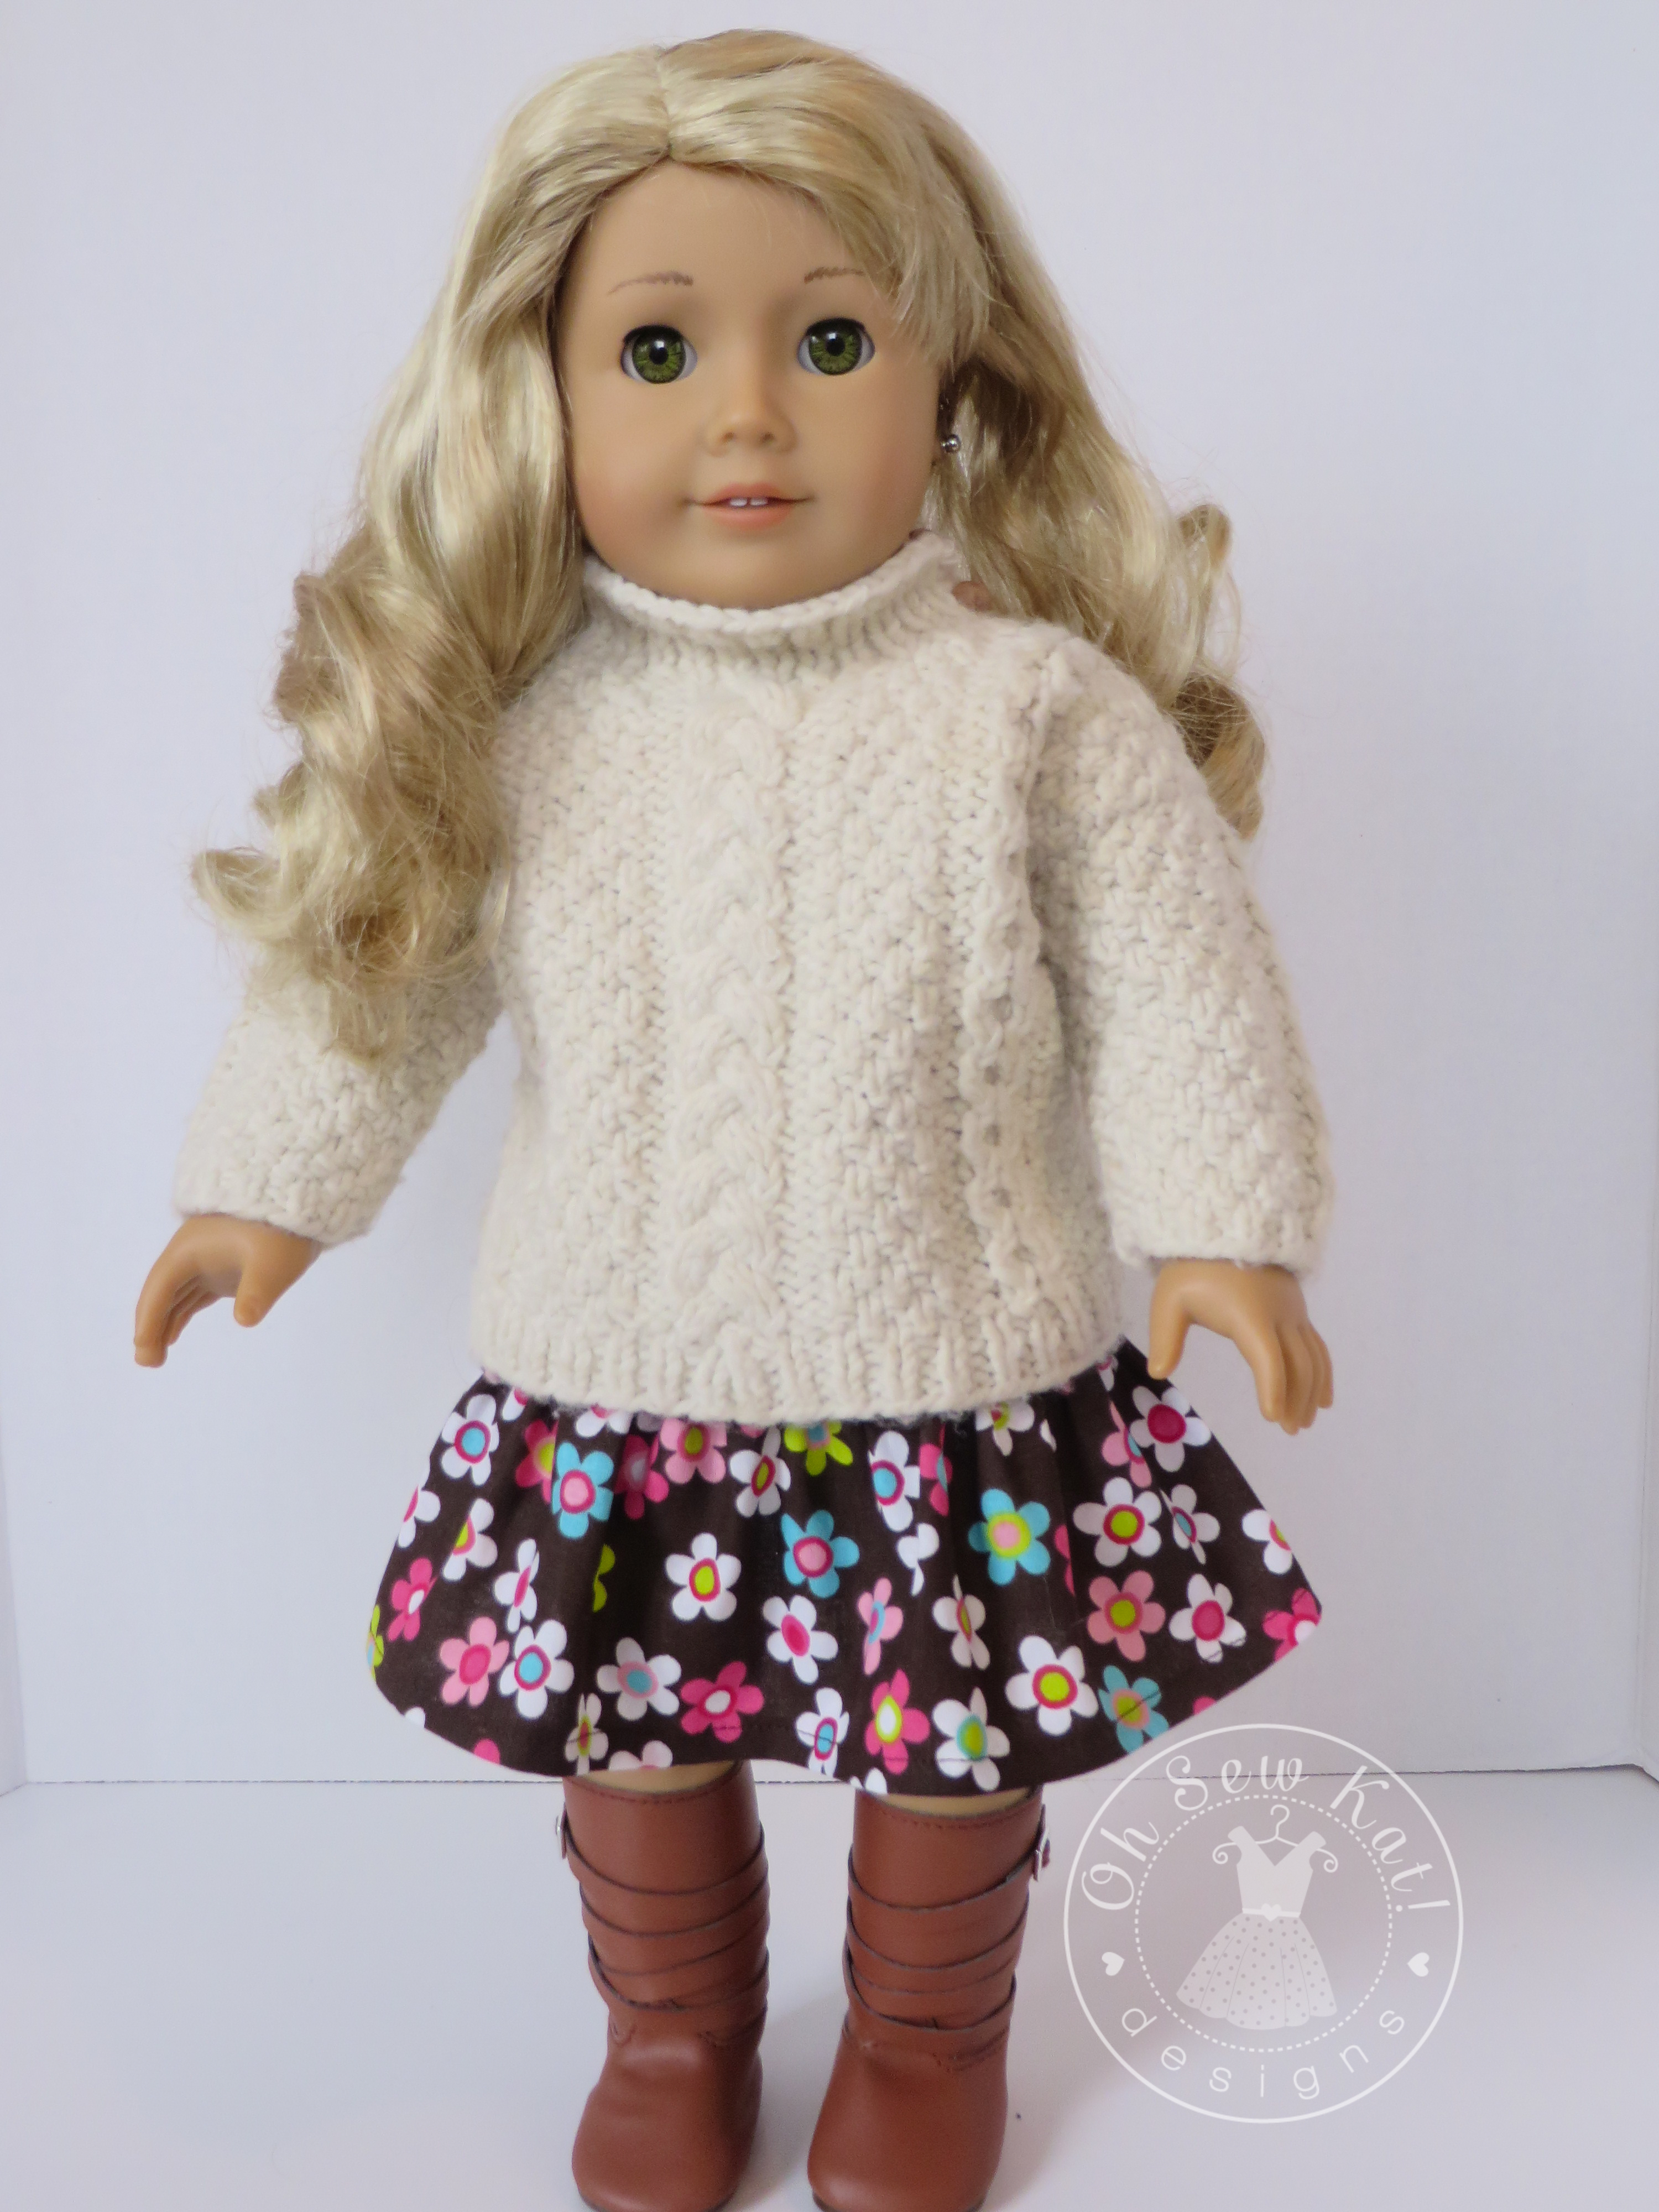 Make a skirt for your 18 inch American Girl doll with a free, easy sewing pattern from Oh Sew Kat! #freepattern #dollclothes #ohsewkat #dollskirt